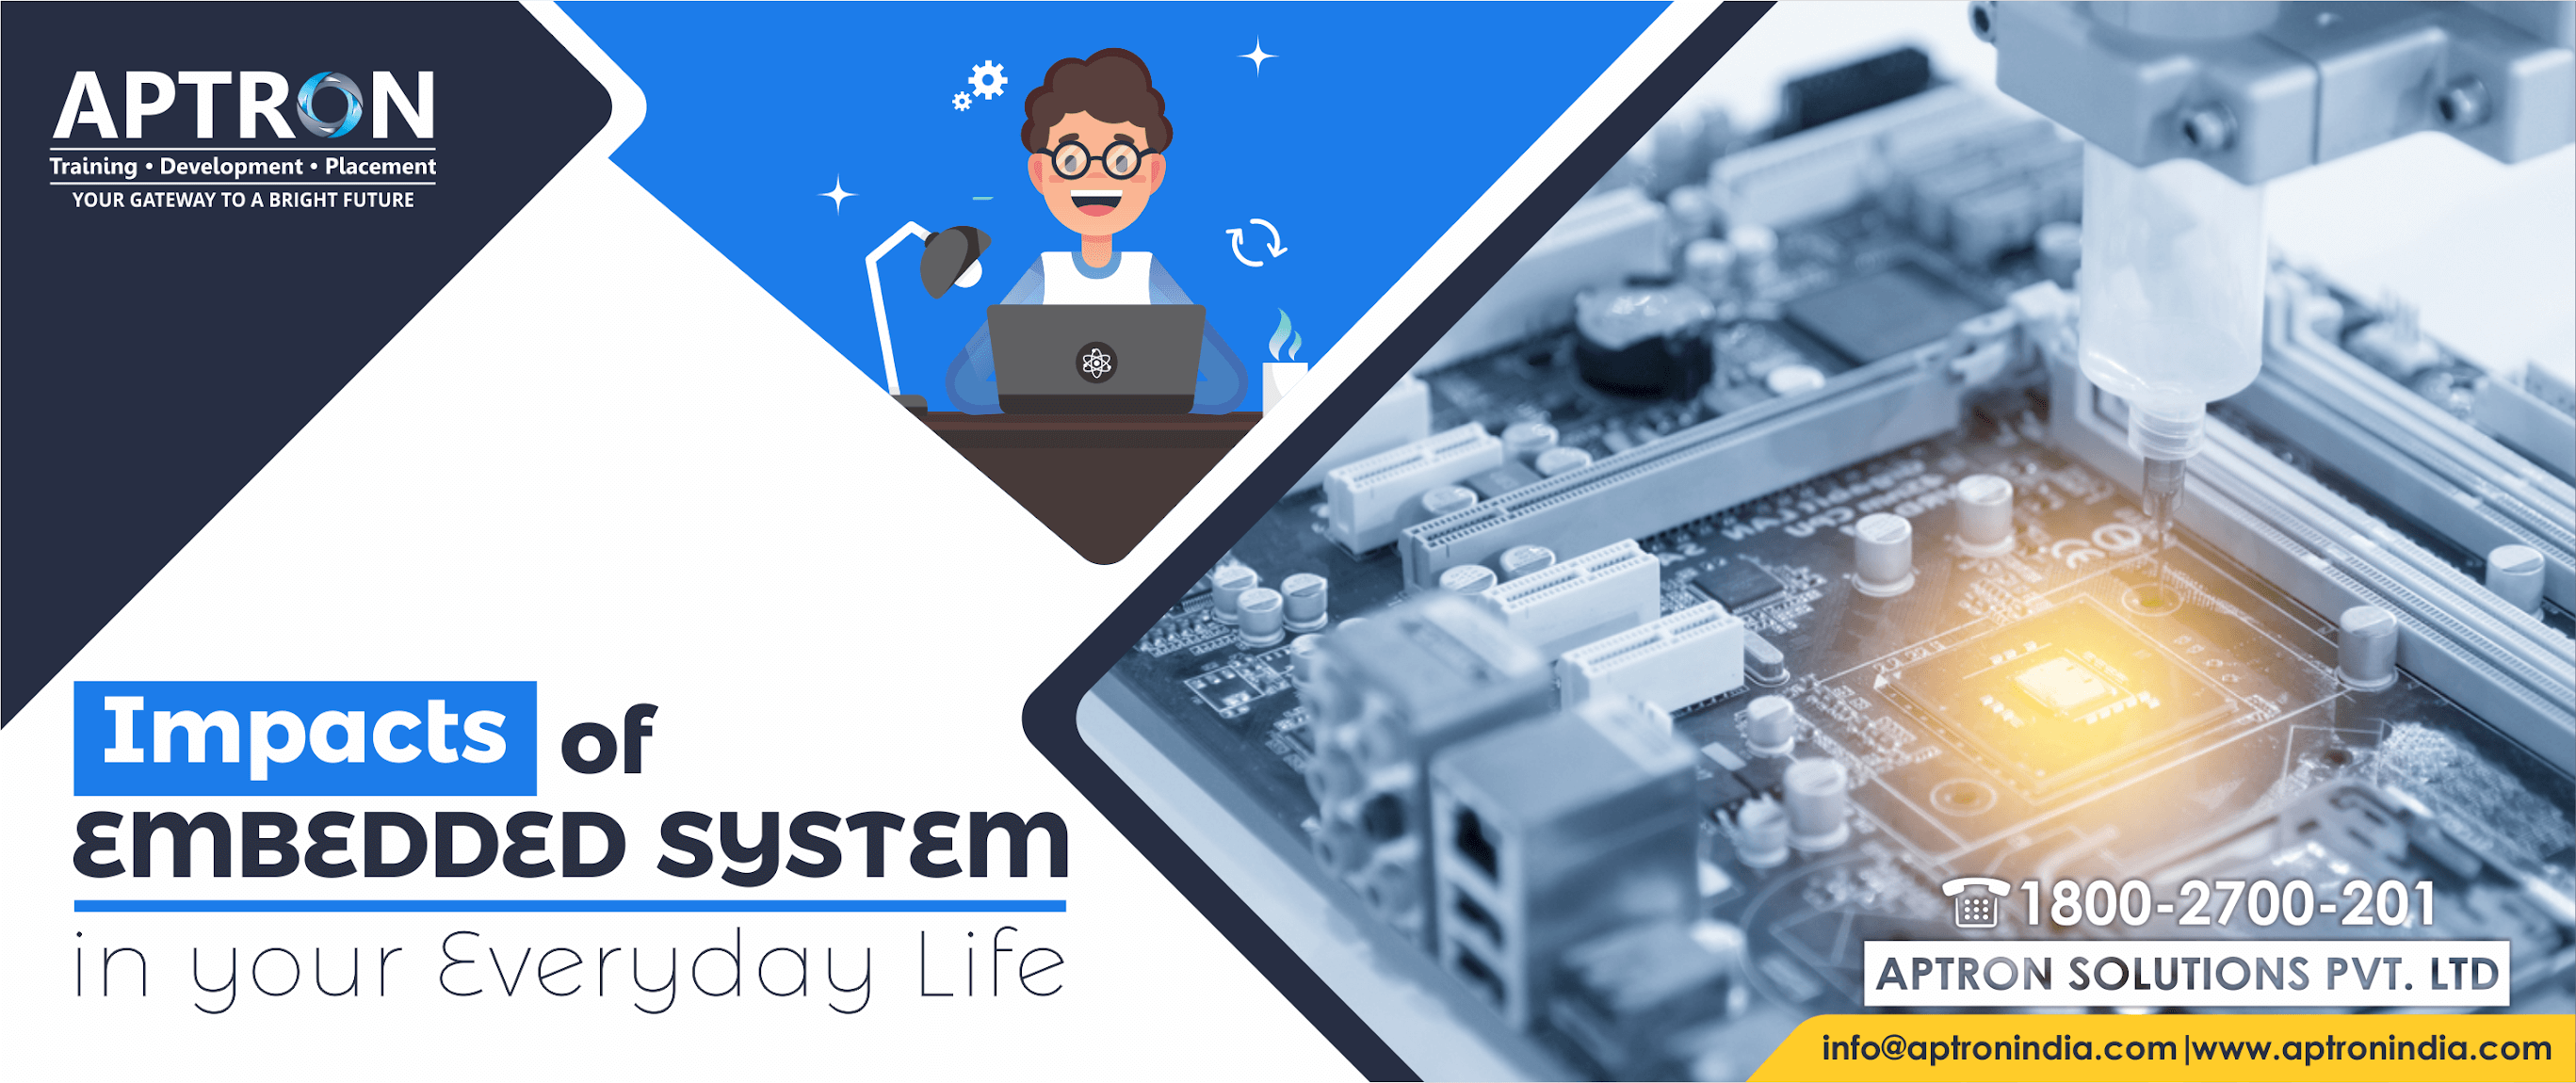 Impacts of Embedded System in your Everyday Life